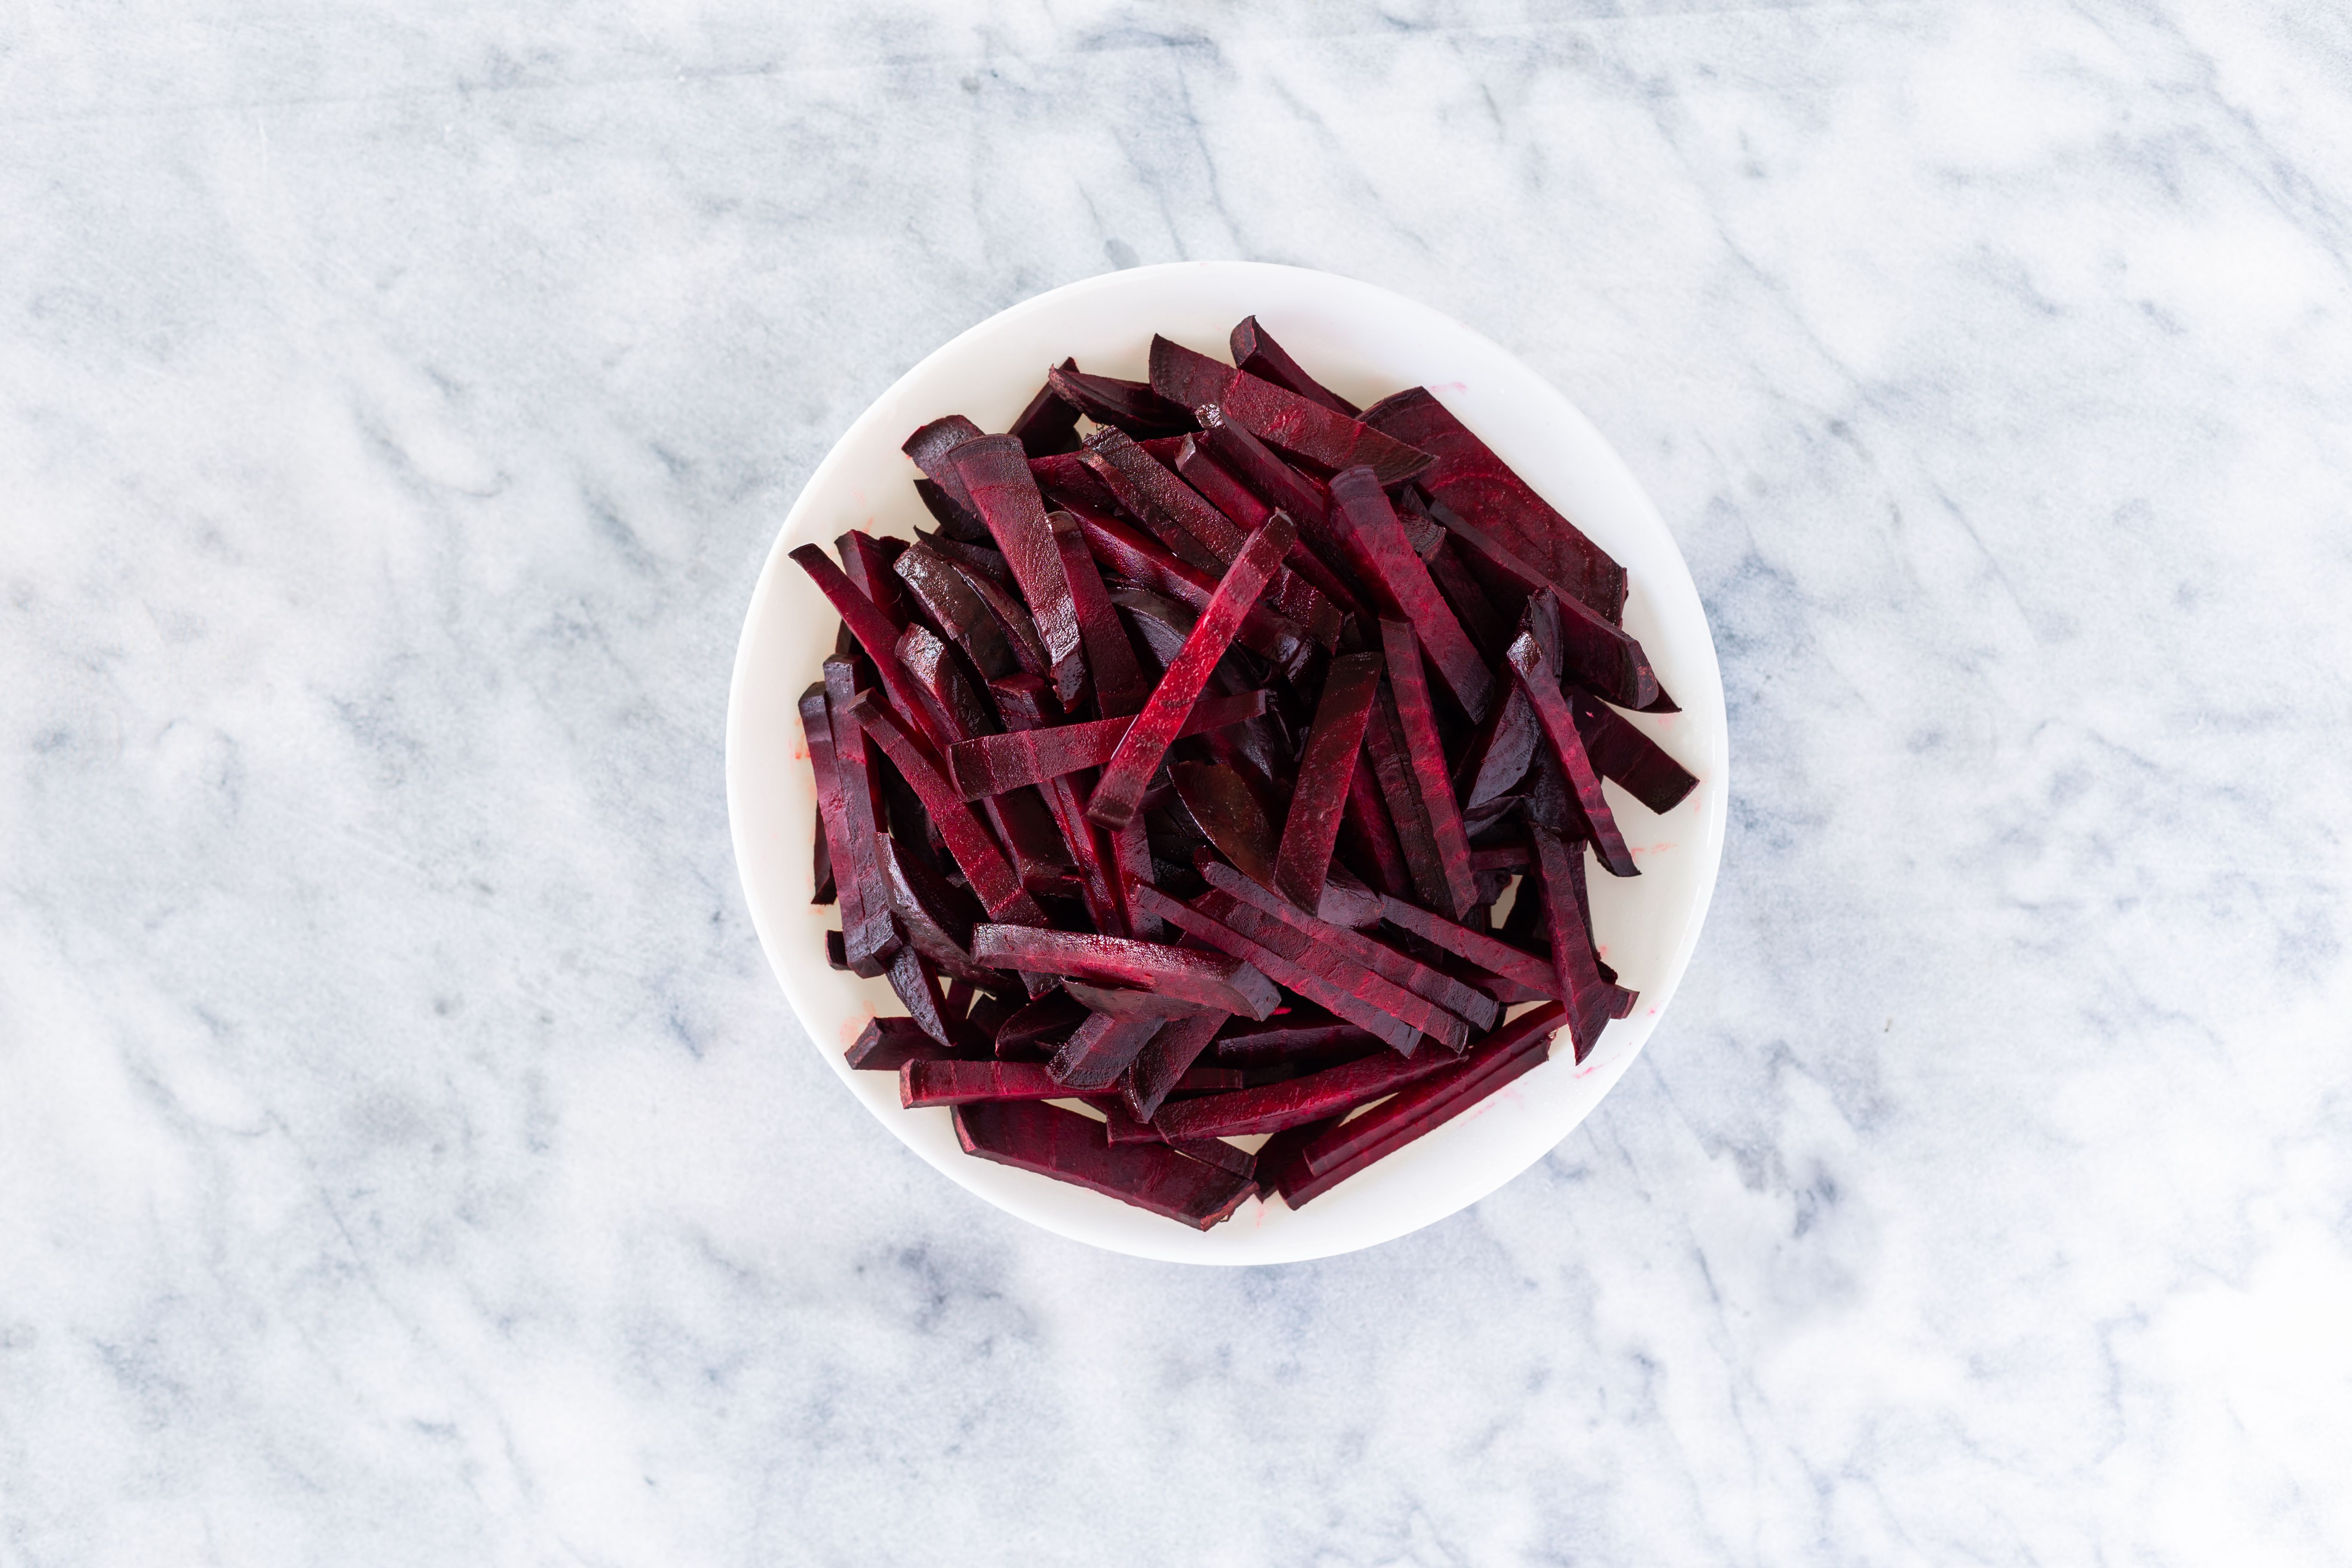 Julienned beets in a white bowl